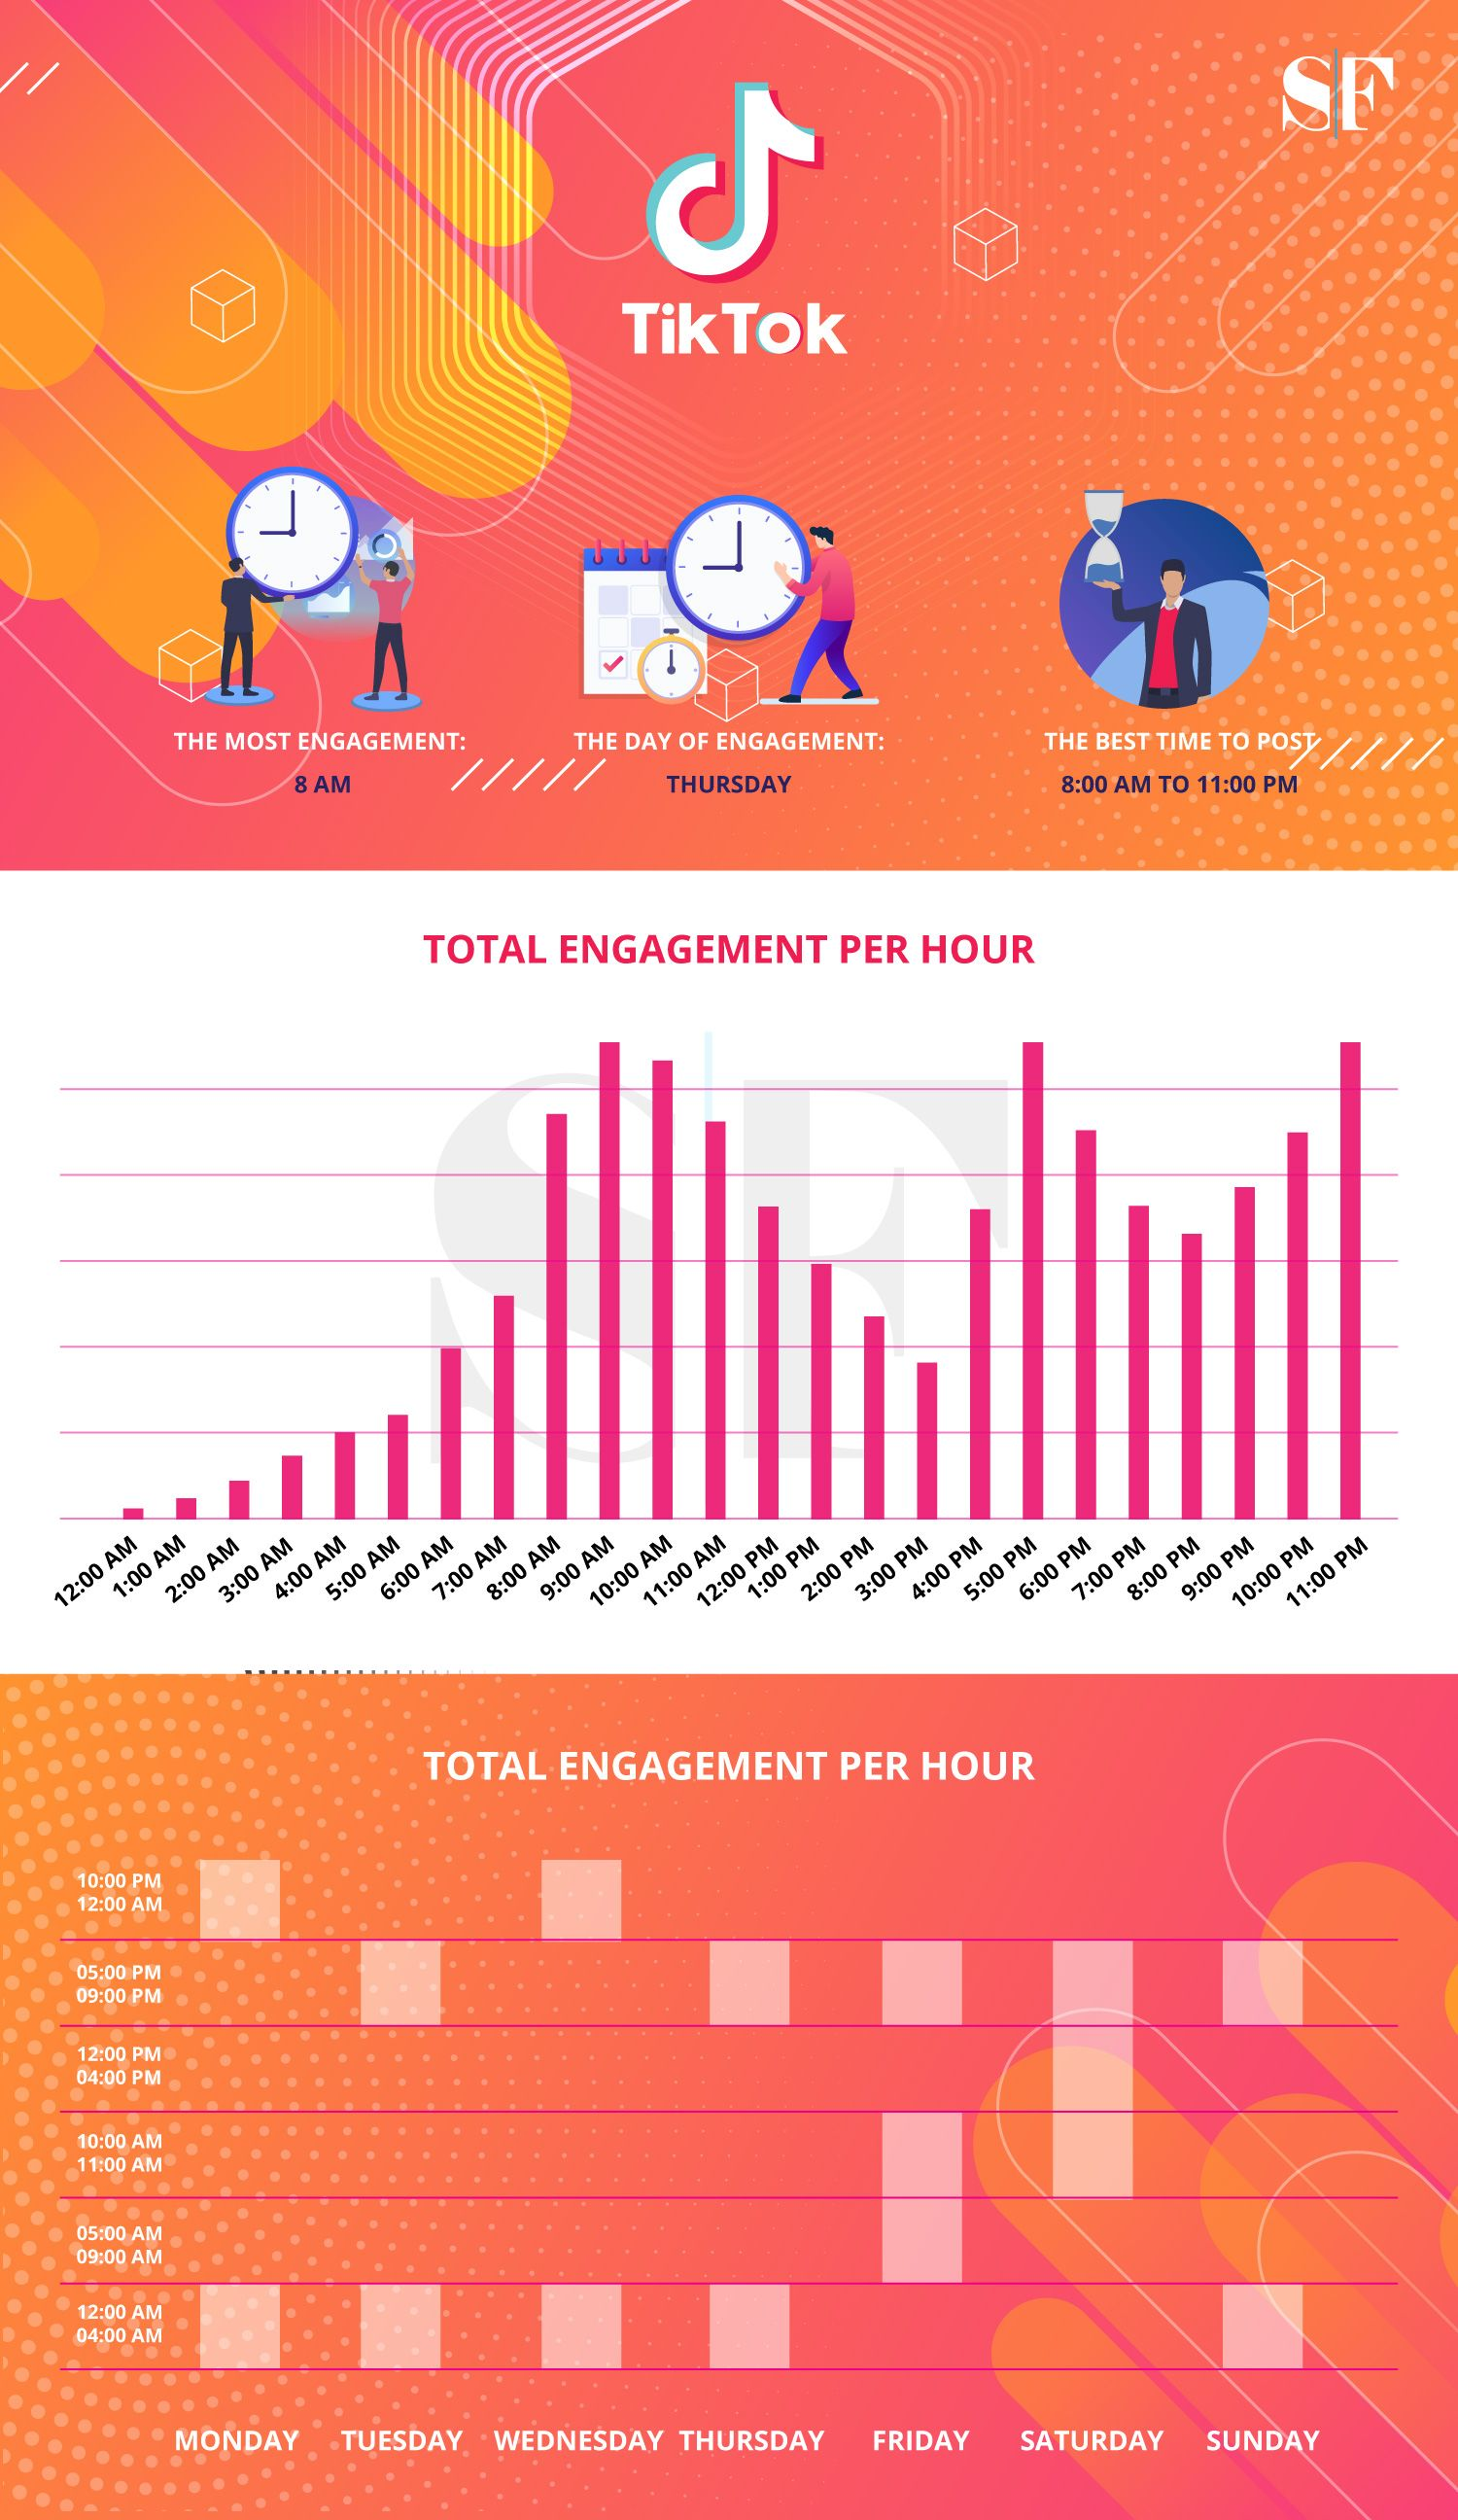 The Best Times To Post On Tik Tok Best Time To Post Digital Marketing Design Marketing Strategy Social Media